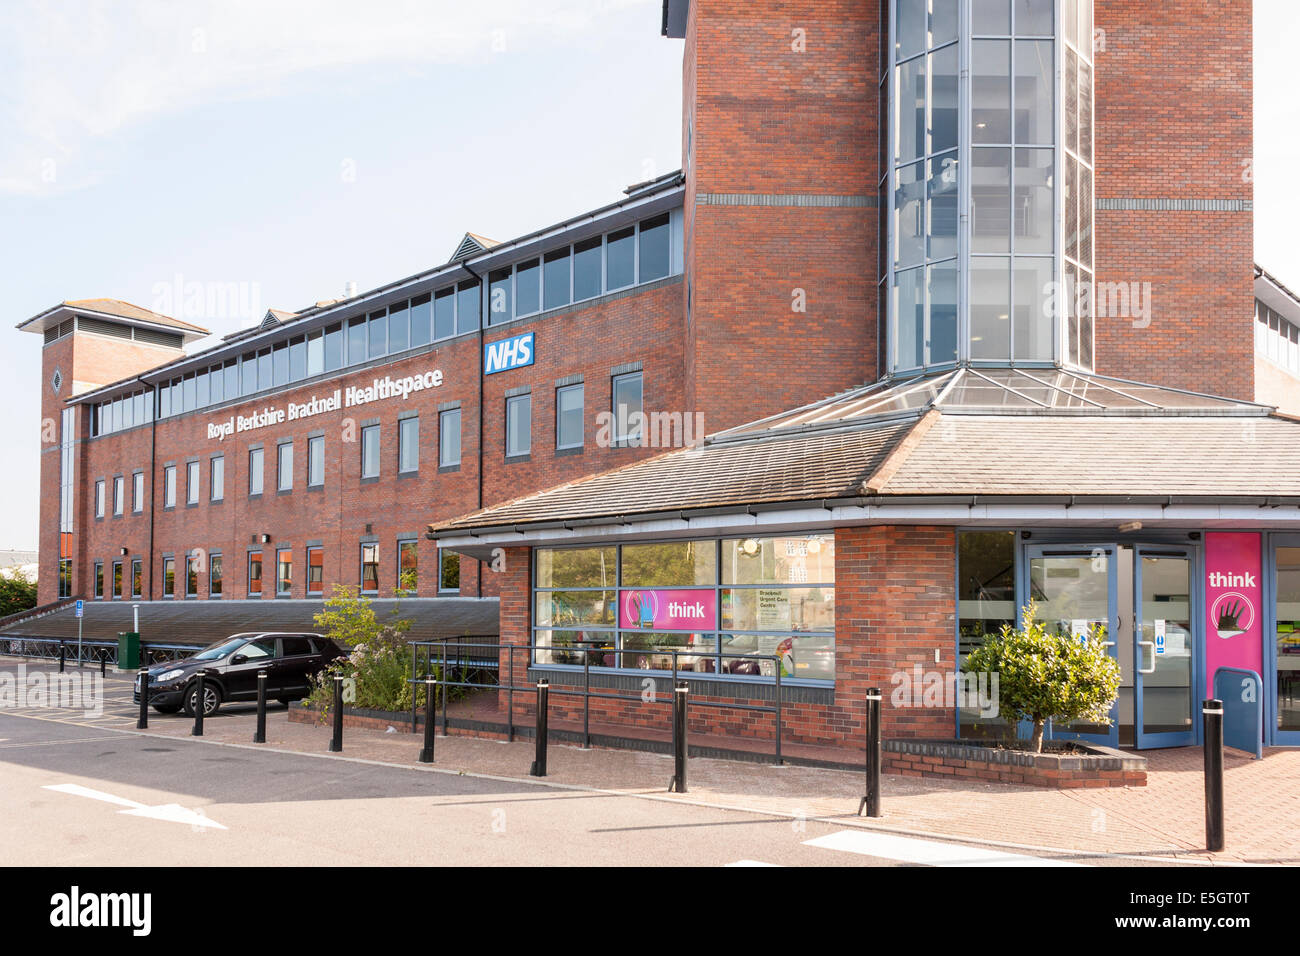 Entrance to NHS Urgent Care Centre, Bracknell, Berkshire, England, GB, UK. - Stock Image